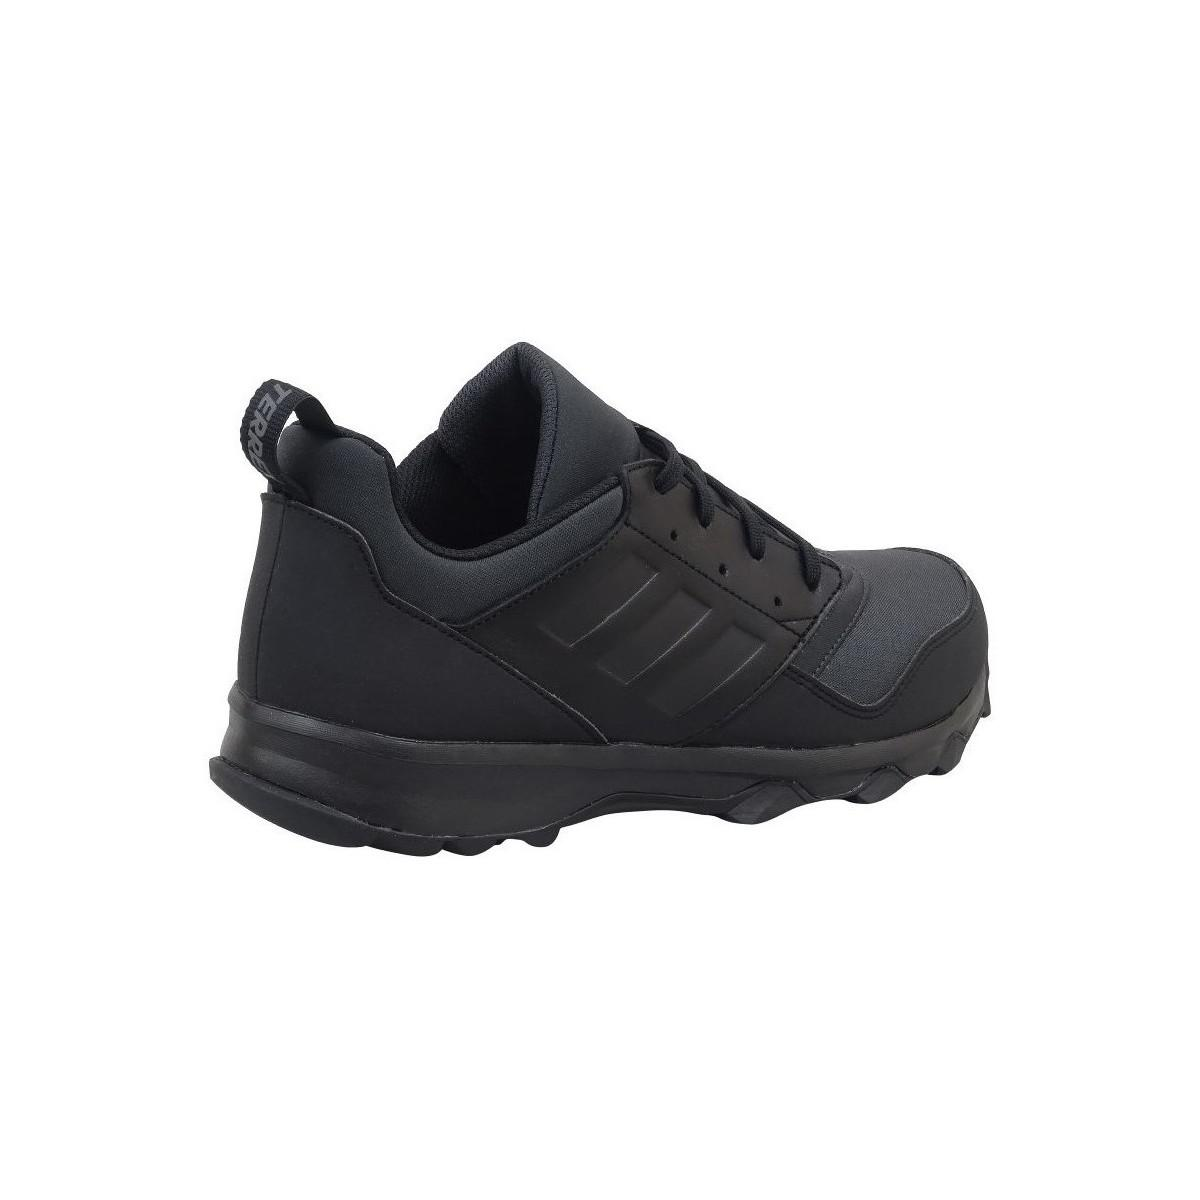 huge selection of b4e29 95993 adidas Terrex Noket Mens Shoes (trainers) In Black in Black